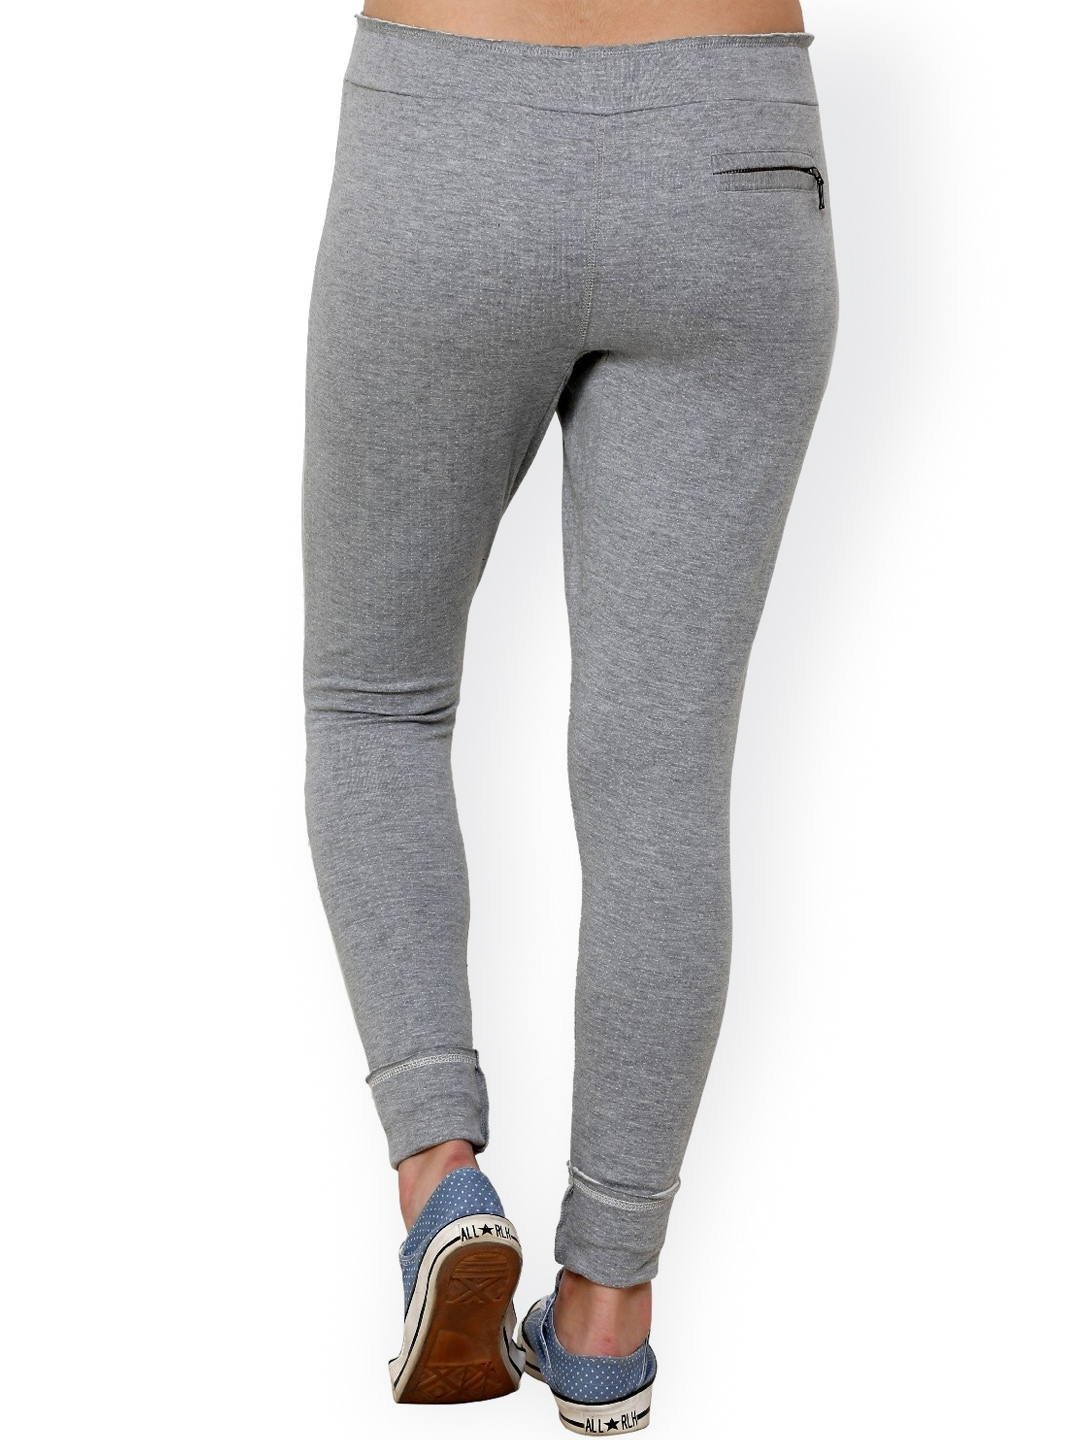 Luxury  Track Pants By Campus Sutra More Grey Track Pants More Track Pants